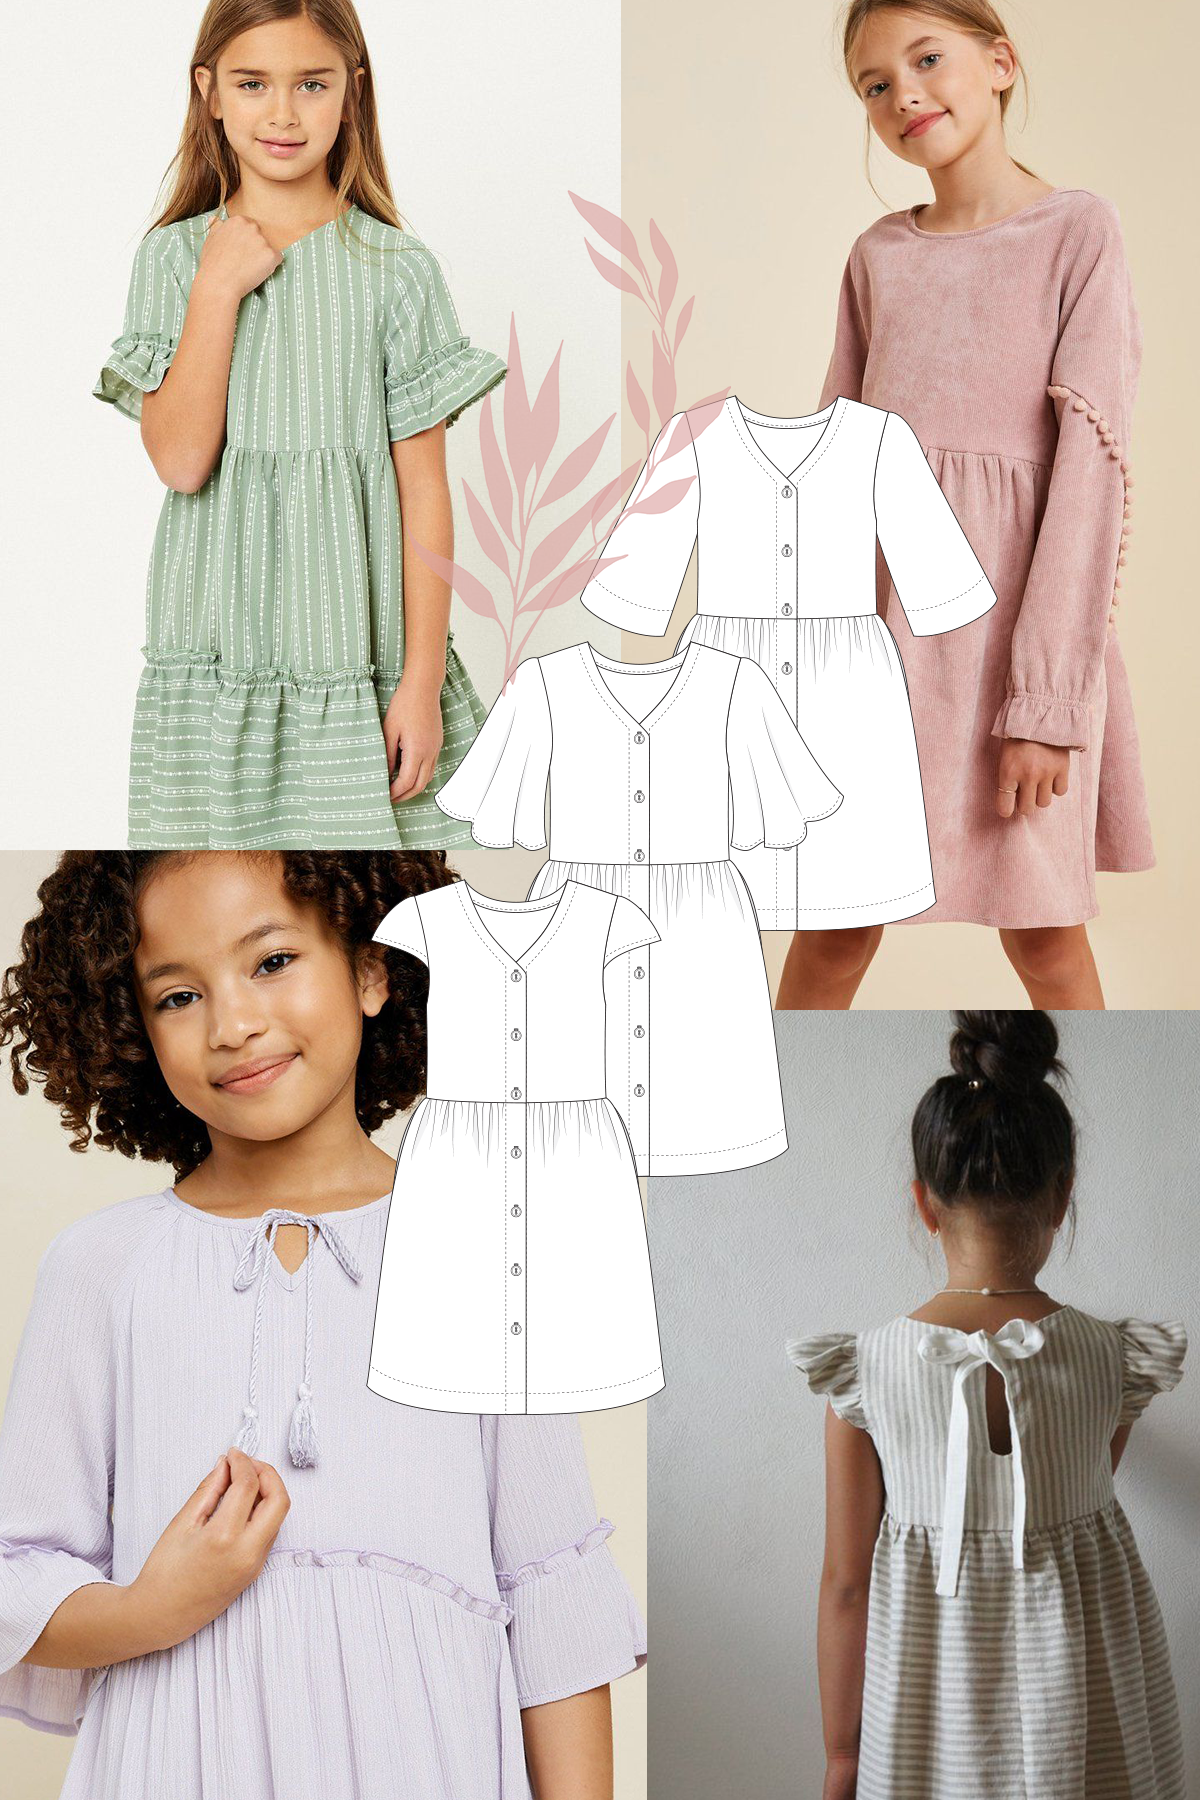 Get creative with your Mini Darling Ranges sleeves